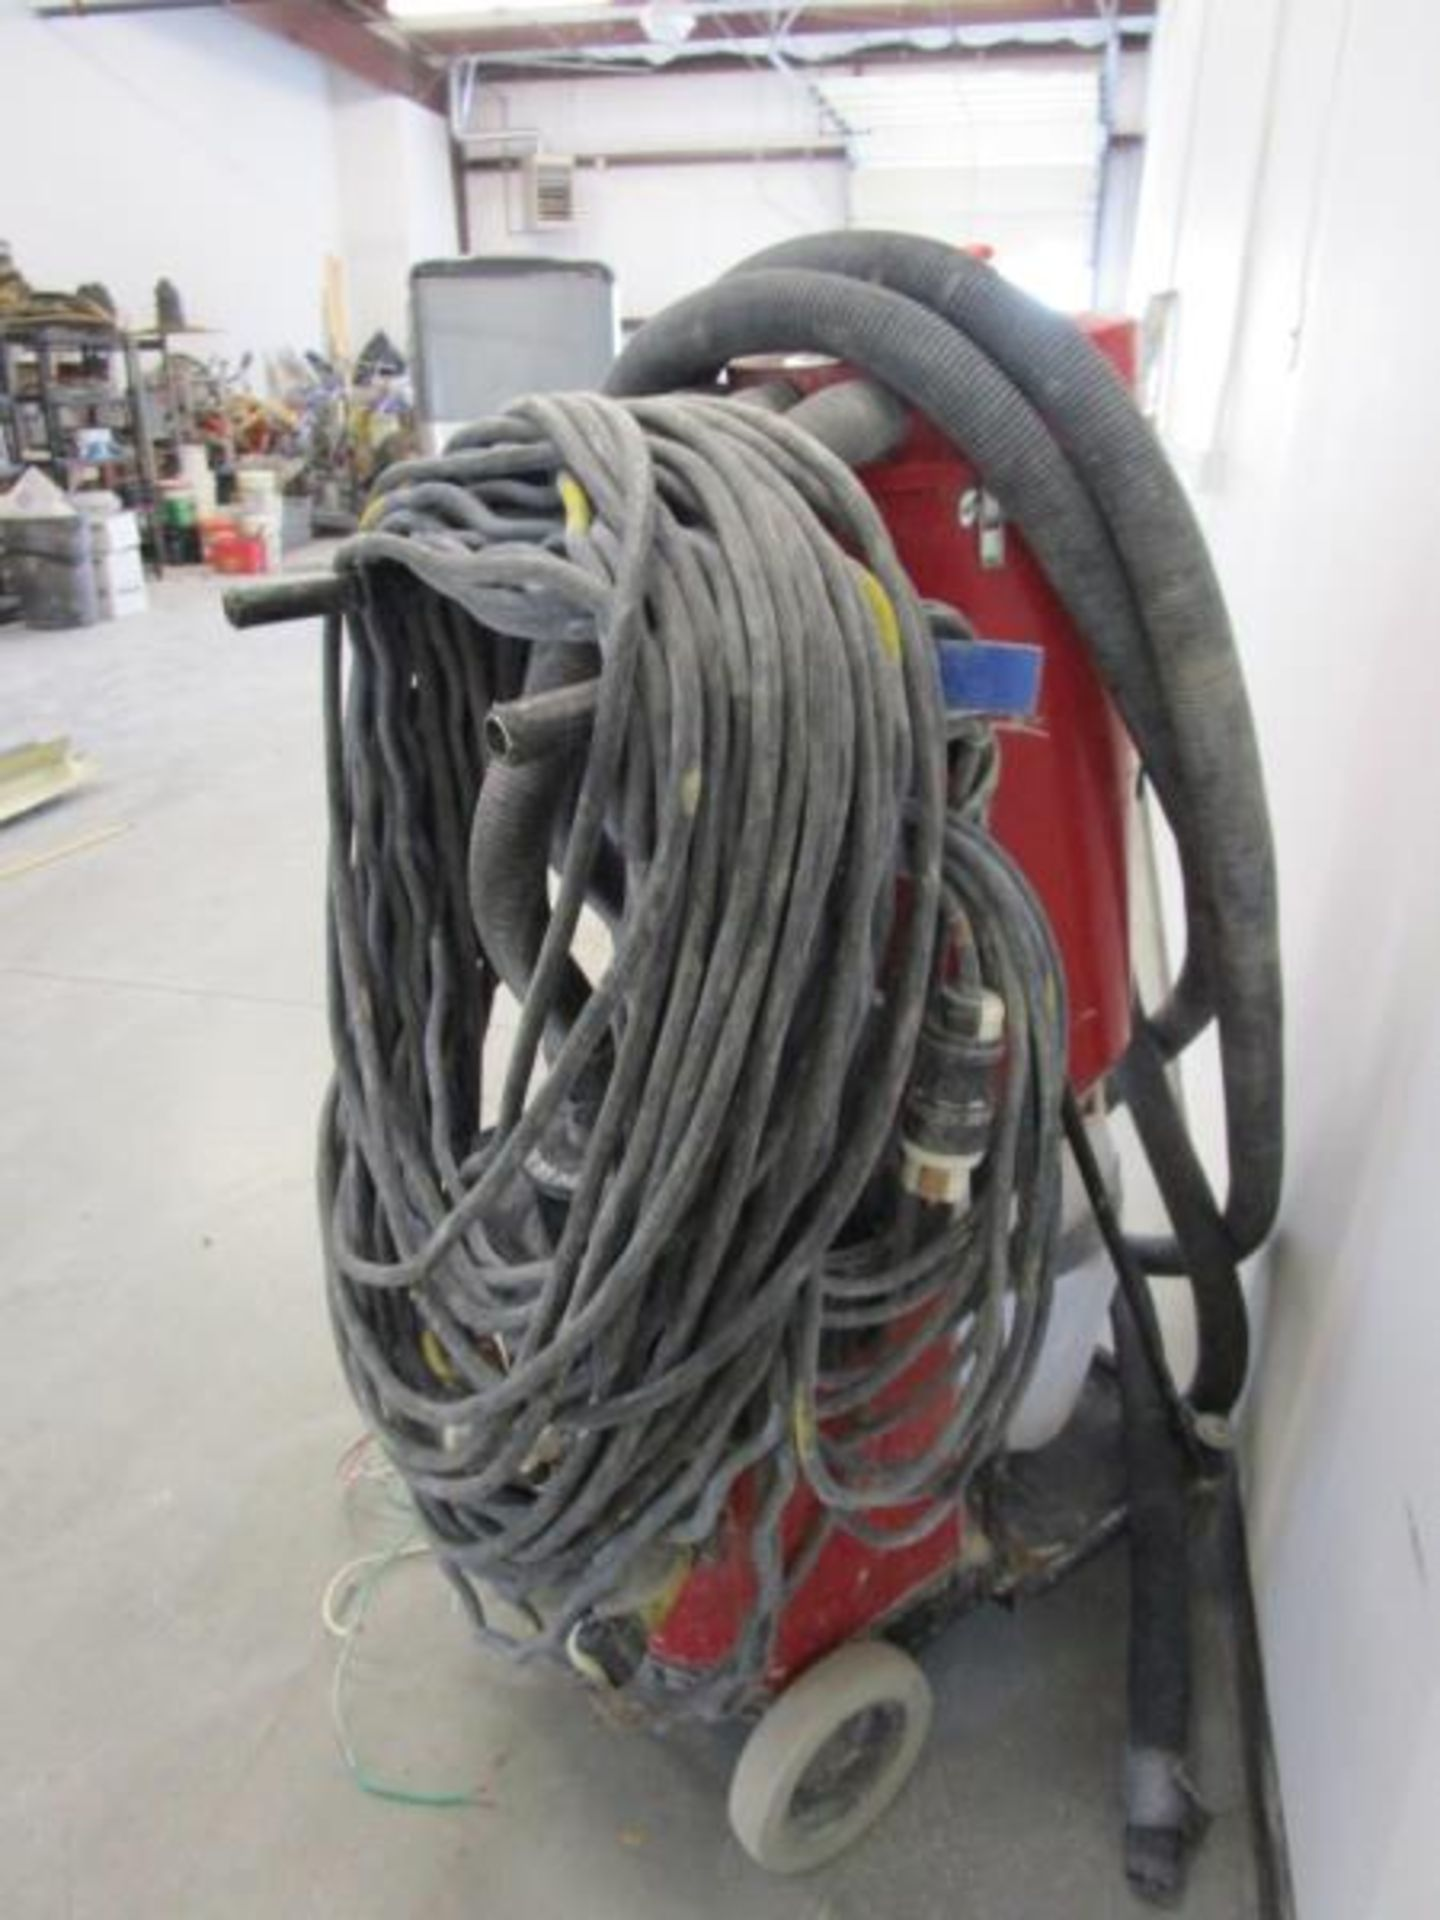 Lot 3 - Hepa Filer by Pullman, Model: S-36, 230 Volt, 50/60hz, 50 AMP, Made 2014, 858 Hours